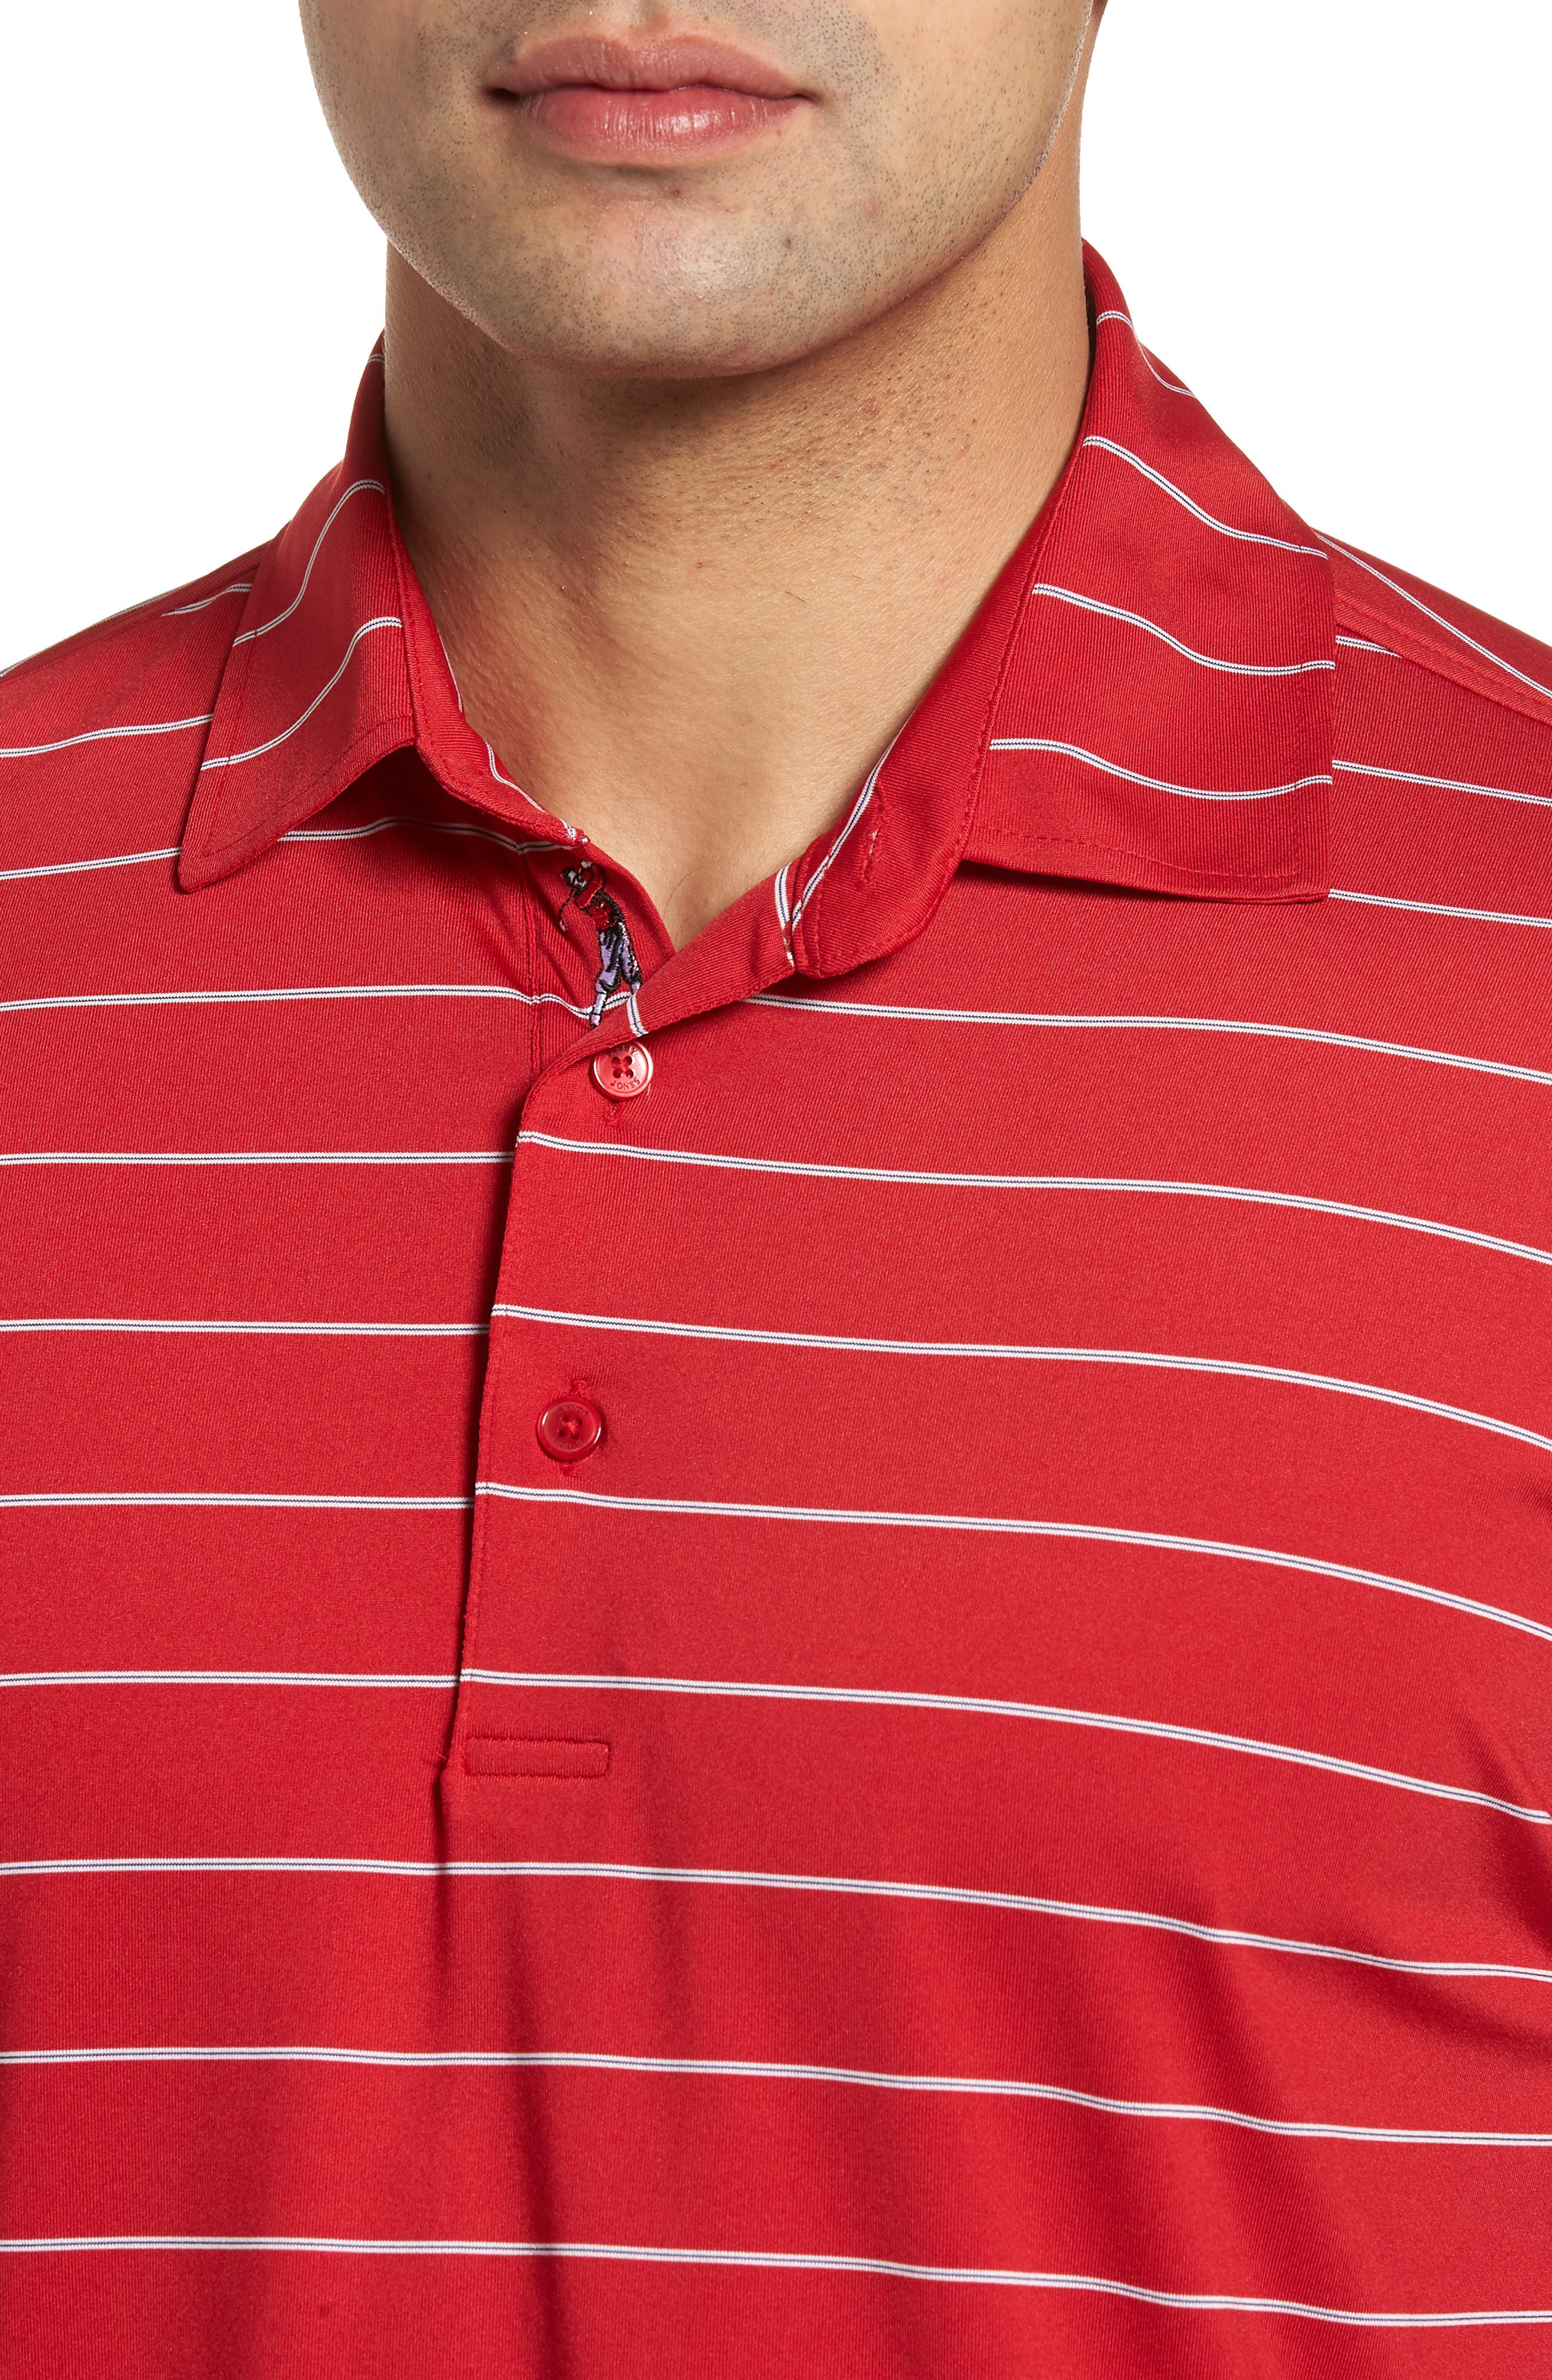 XH2O Momentum Stripe Jersey Polo,                             Alternate thumbnail 4, color,                             CAMBRIDGE RED